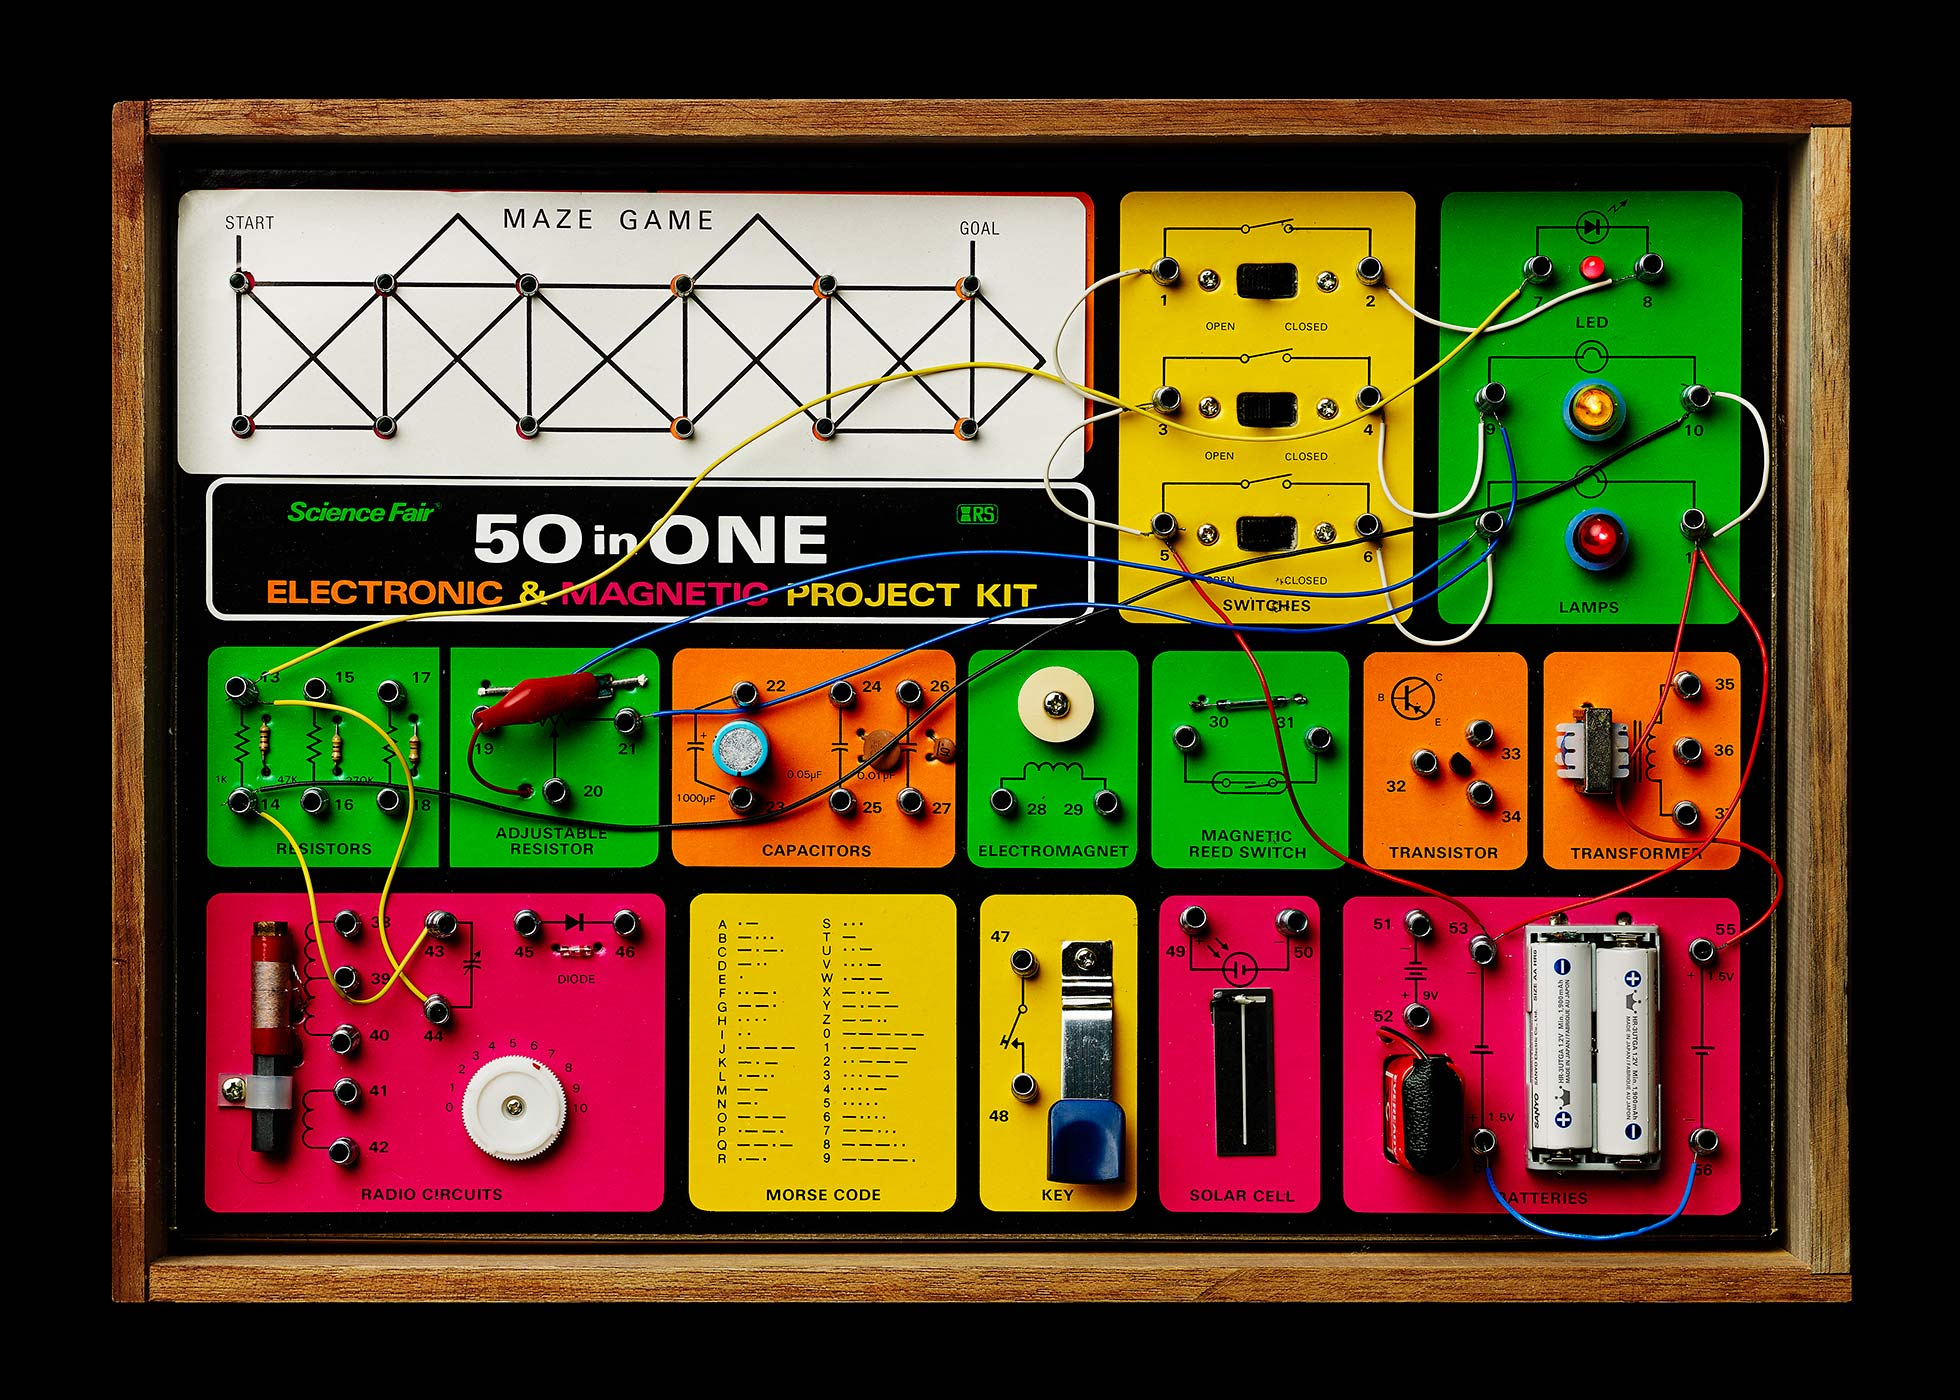 Vintage electronic kit 50 in 1